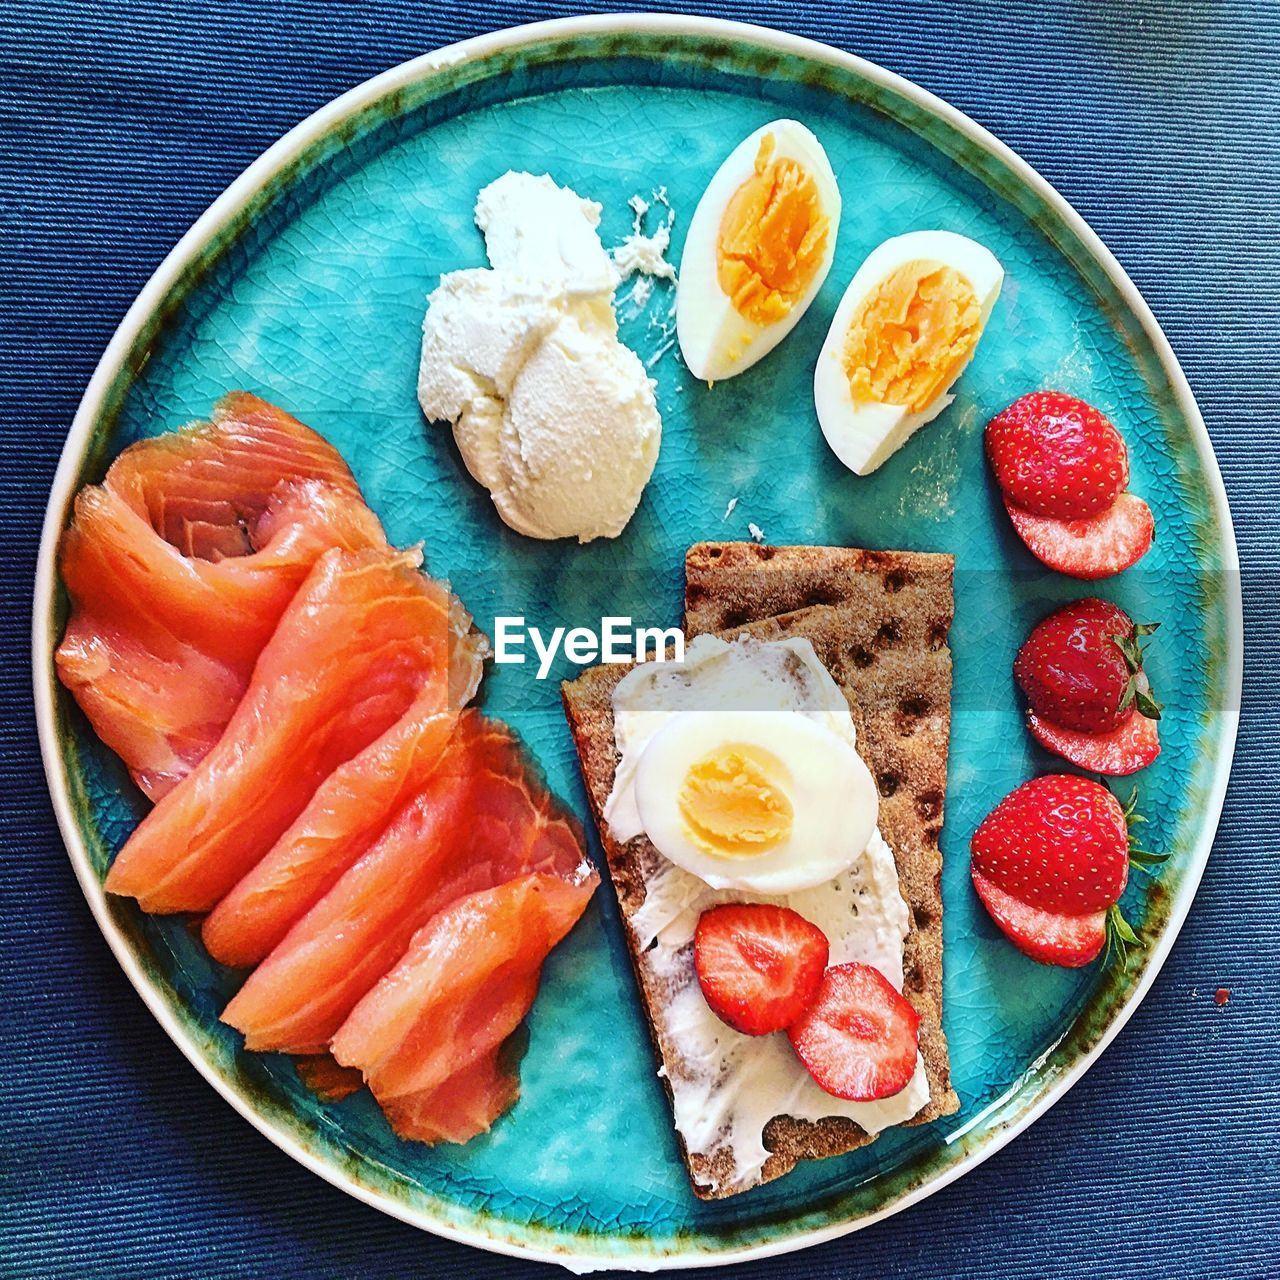 food, food and drink, healthy eating, freshness, wellbeing, indoors, plate, egg, ready-to-eat, fruit, still life, breakfast, no people, table, meal, directly above, high angle view, meat, salmon - seafood, seafood, fried egg, fried, japanese food